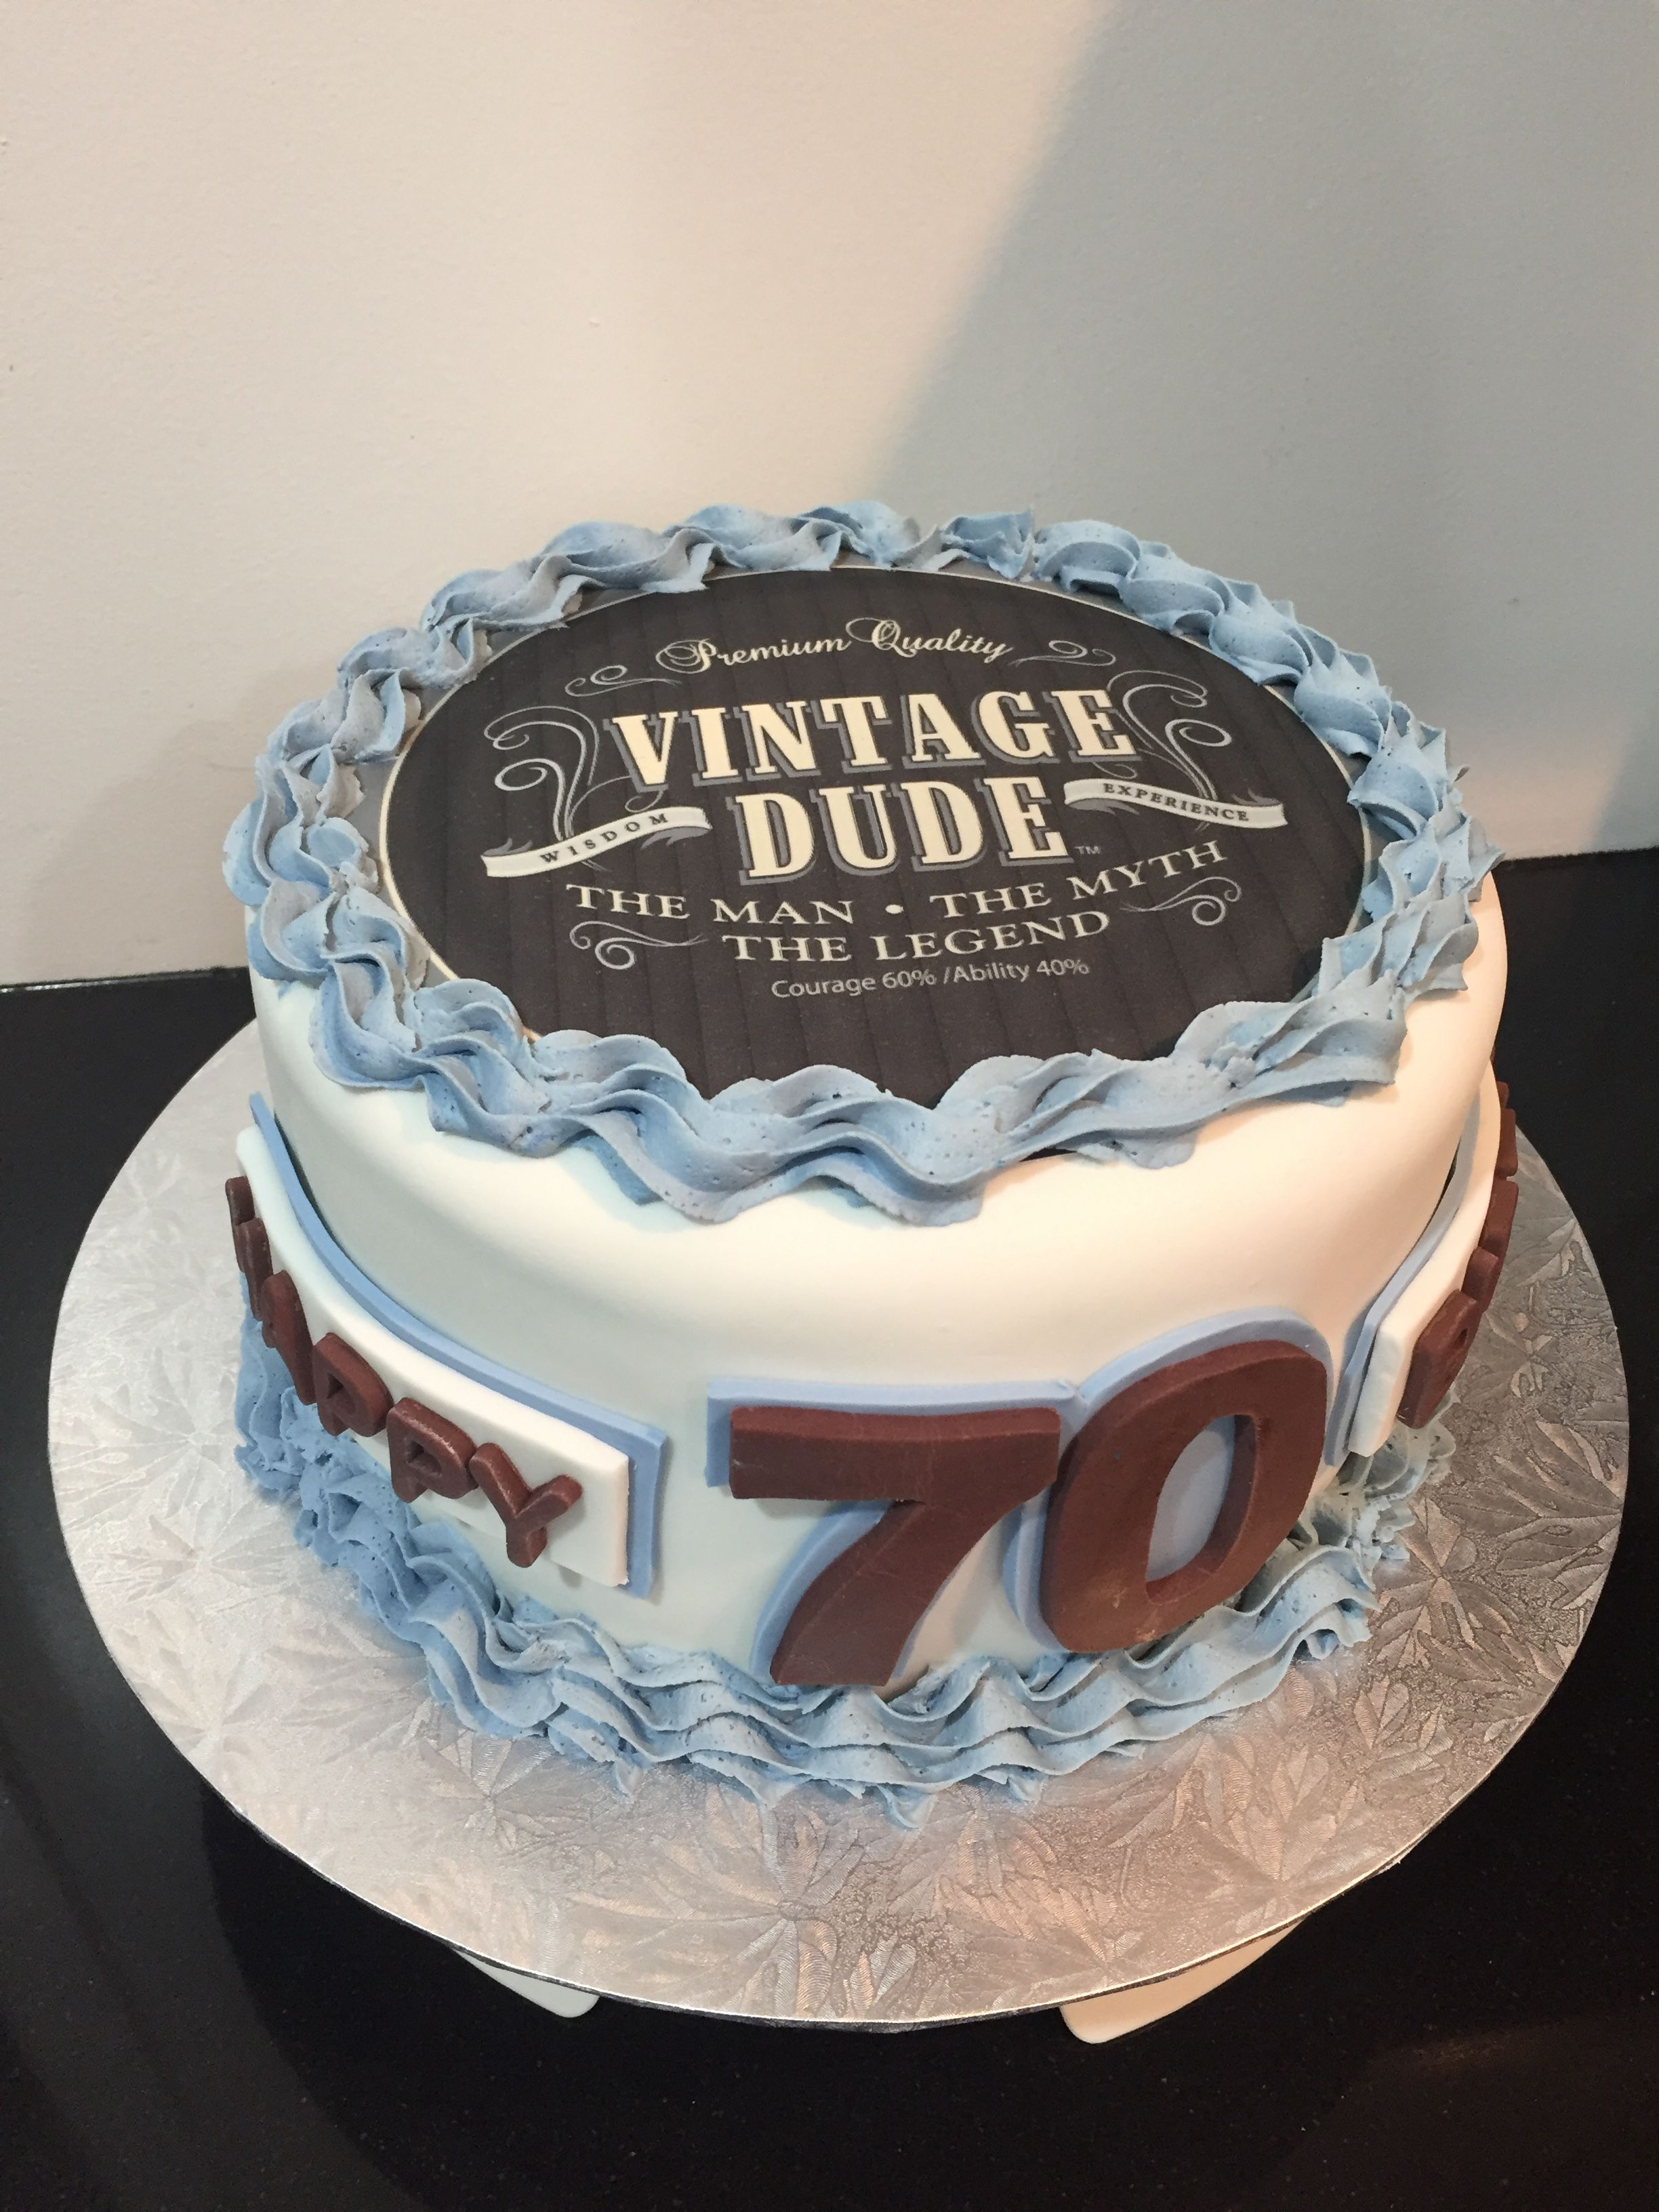 Vintage Dude 70th Cake 70th Birthday Cake For Men 70th Birthday